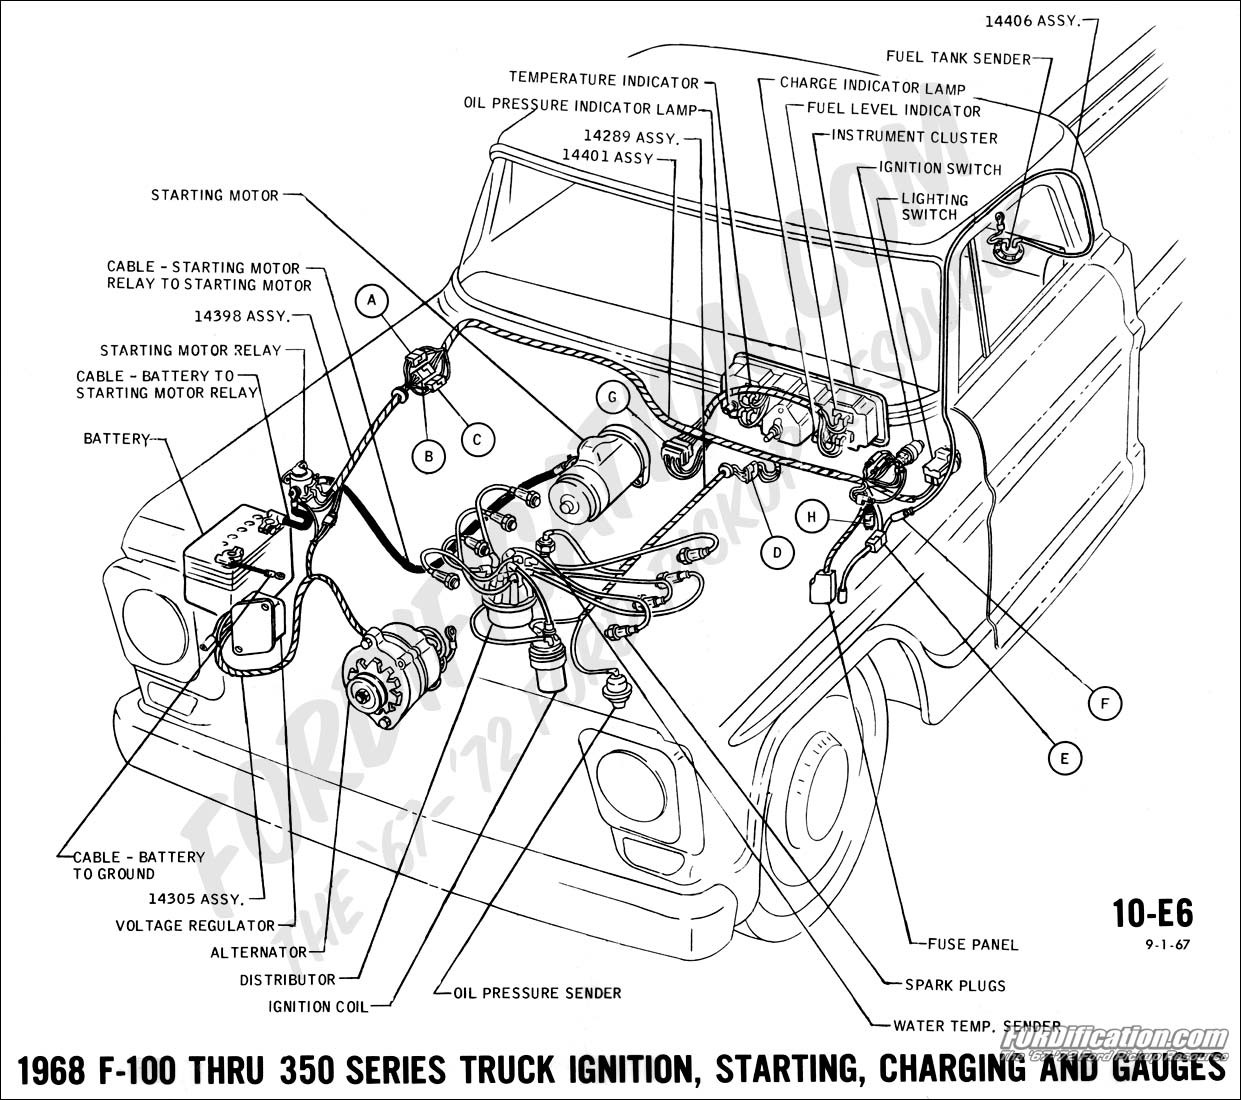 Hv 9556 1970 Chevy Ignition Switch Wiring Diagram Download Diagram